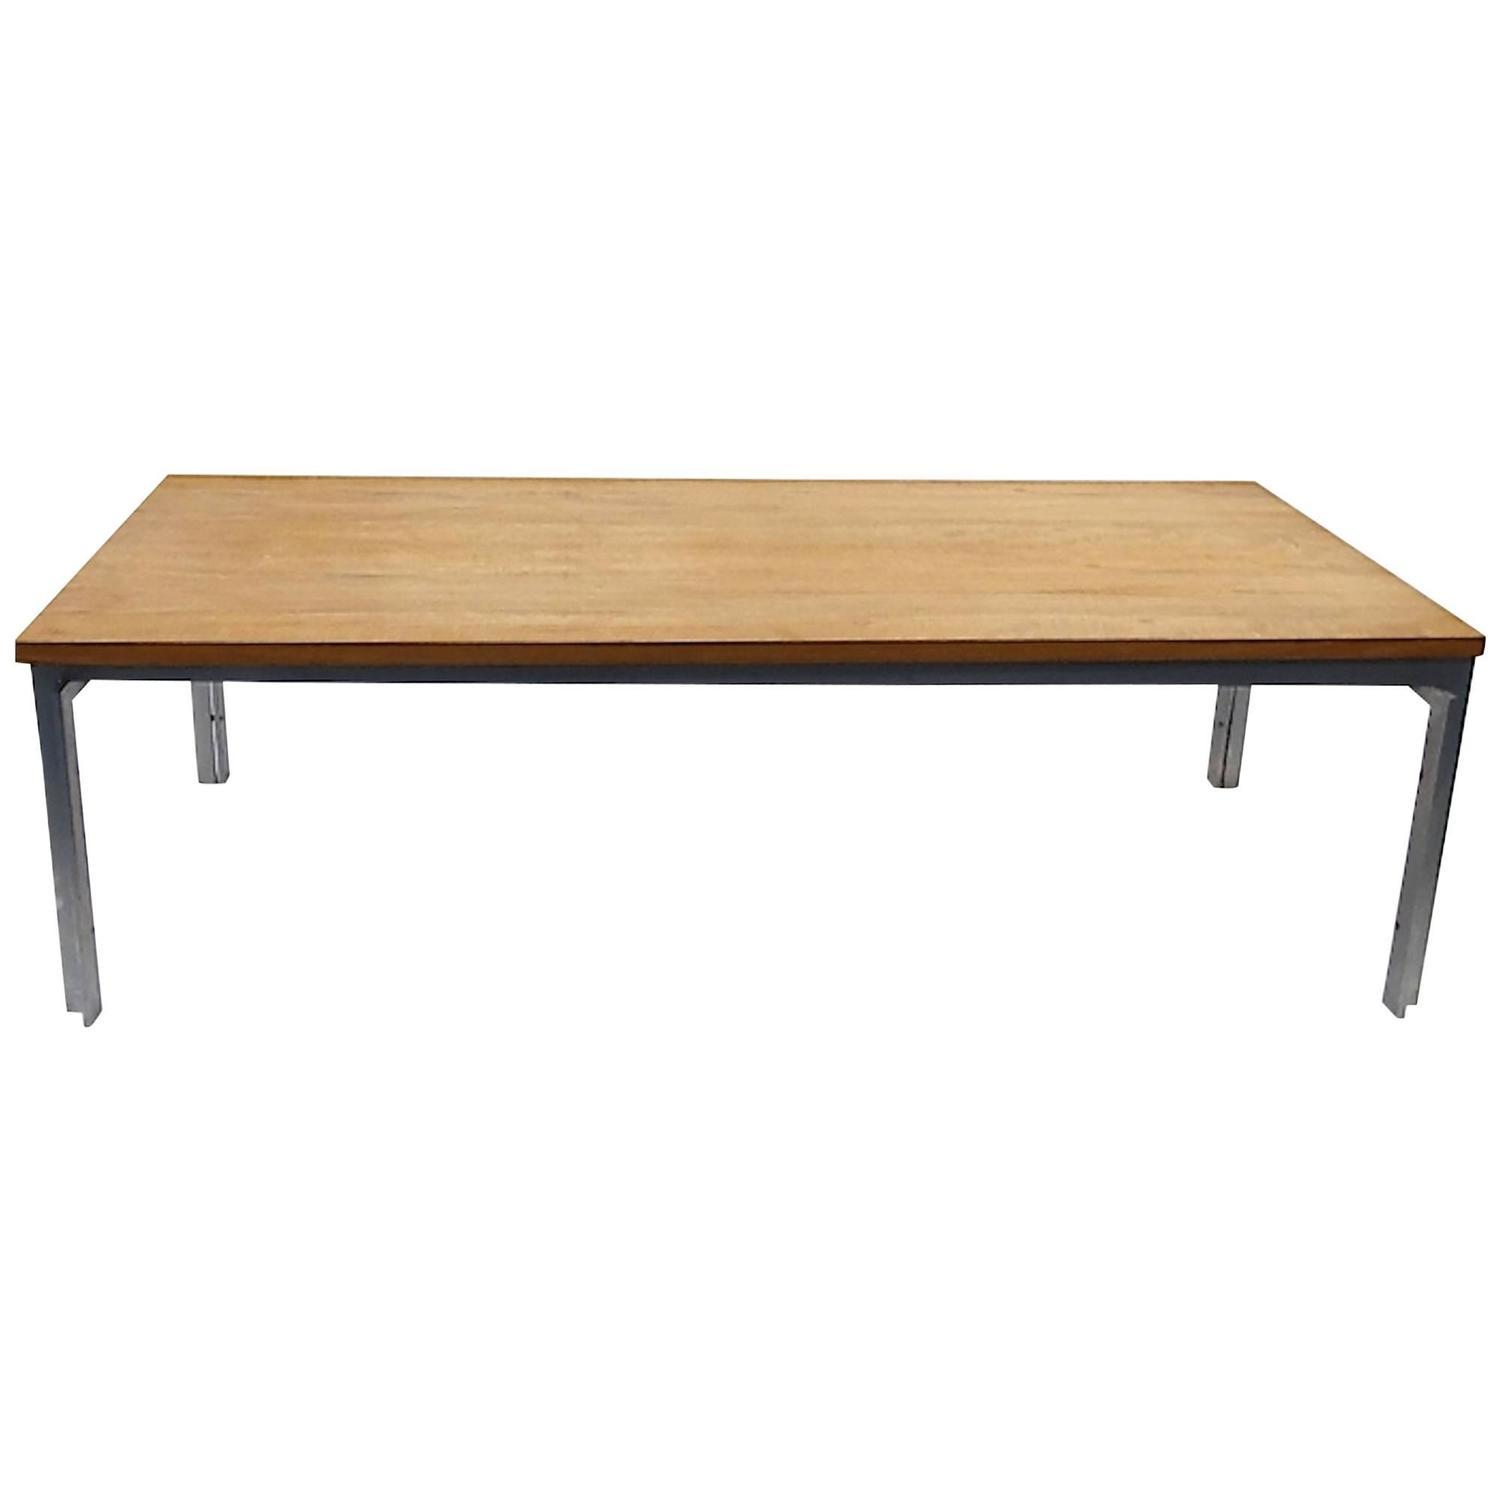 Rare pk59 coffee table with unique teakwood top for sale for Cool coffee tables for sale